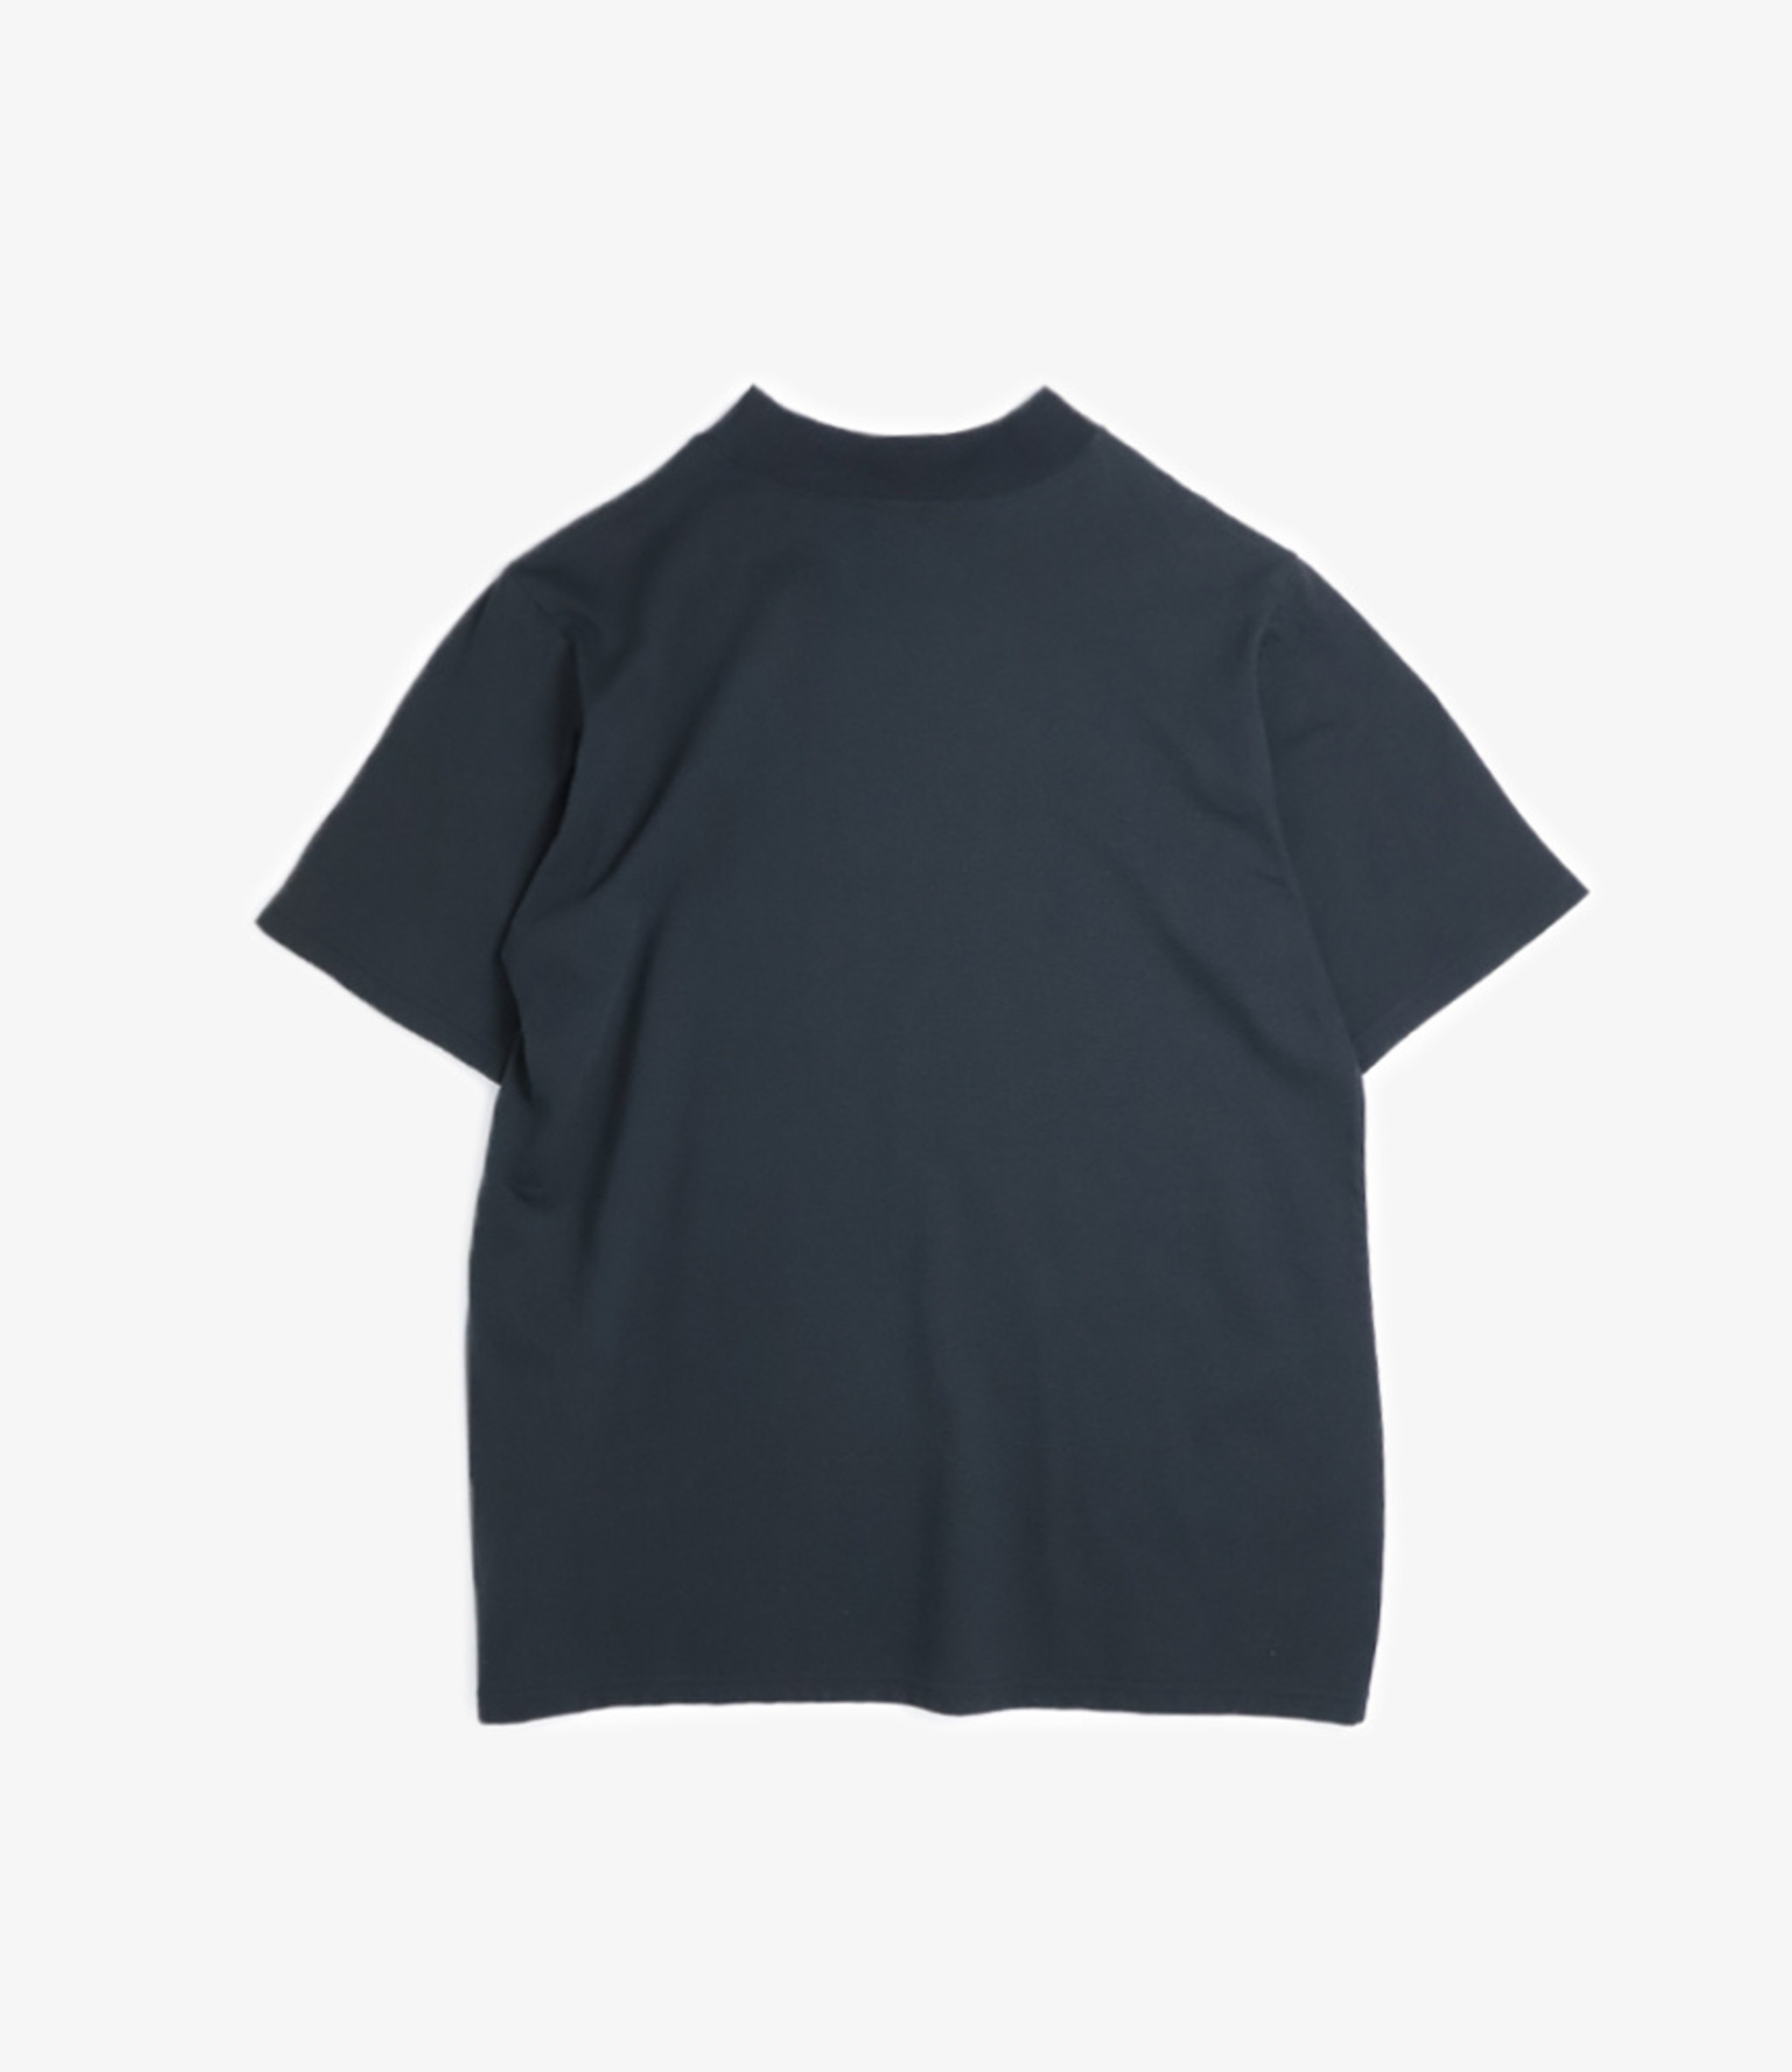 South2 West8 S/S Mock Neck Tee